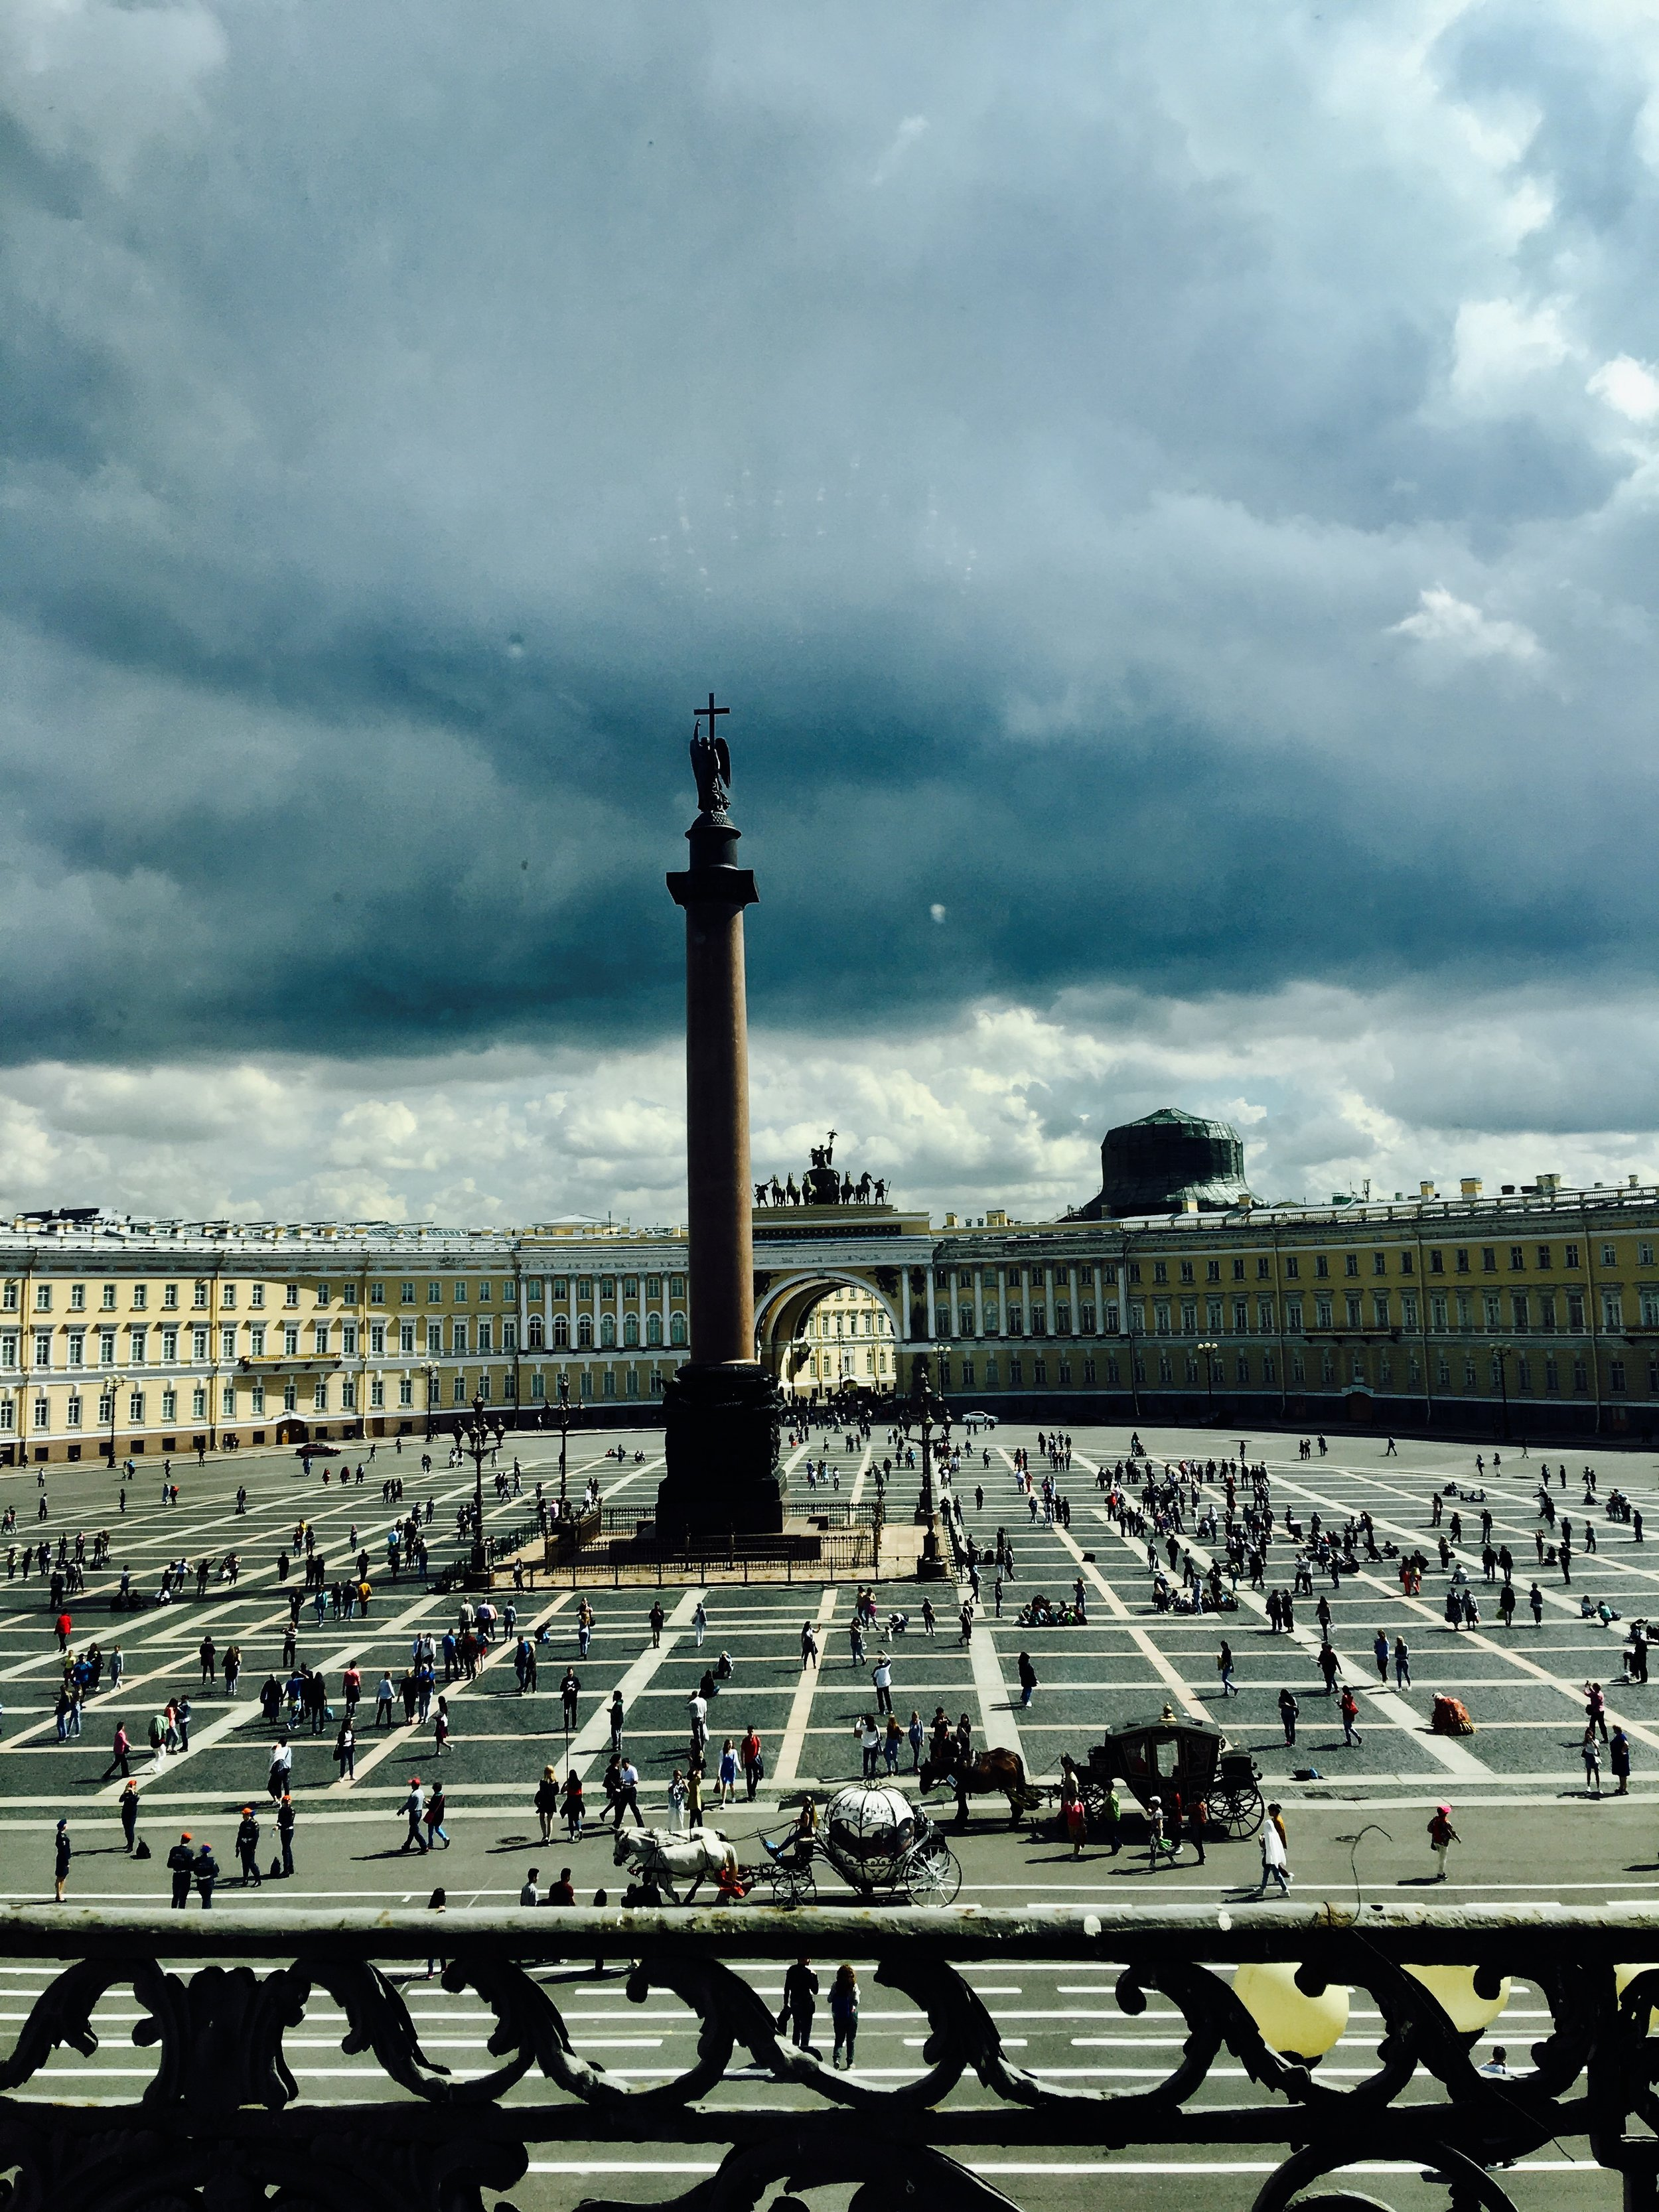 St. Peter's Square shot from inside The Hermitage